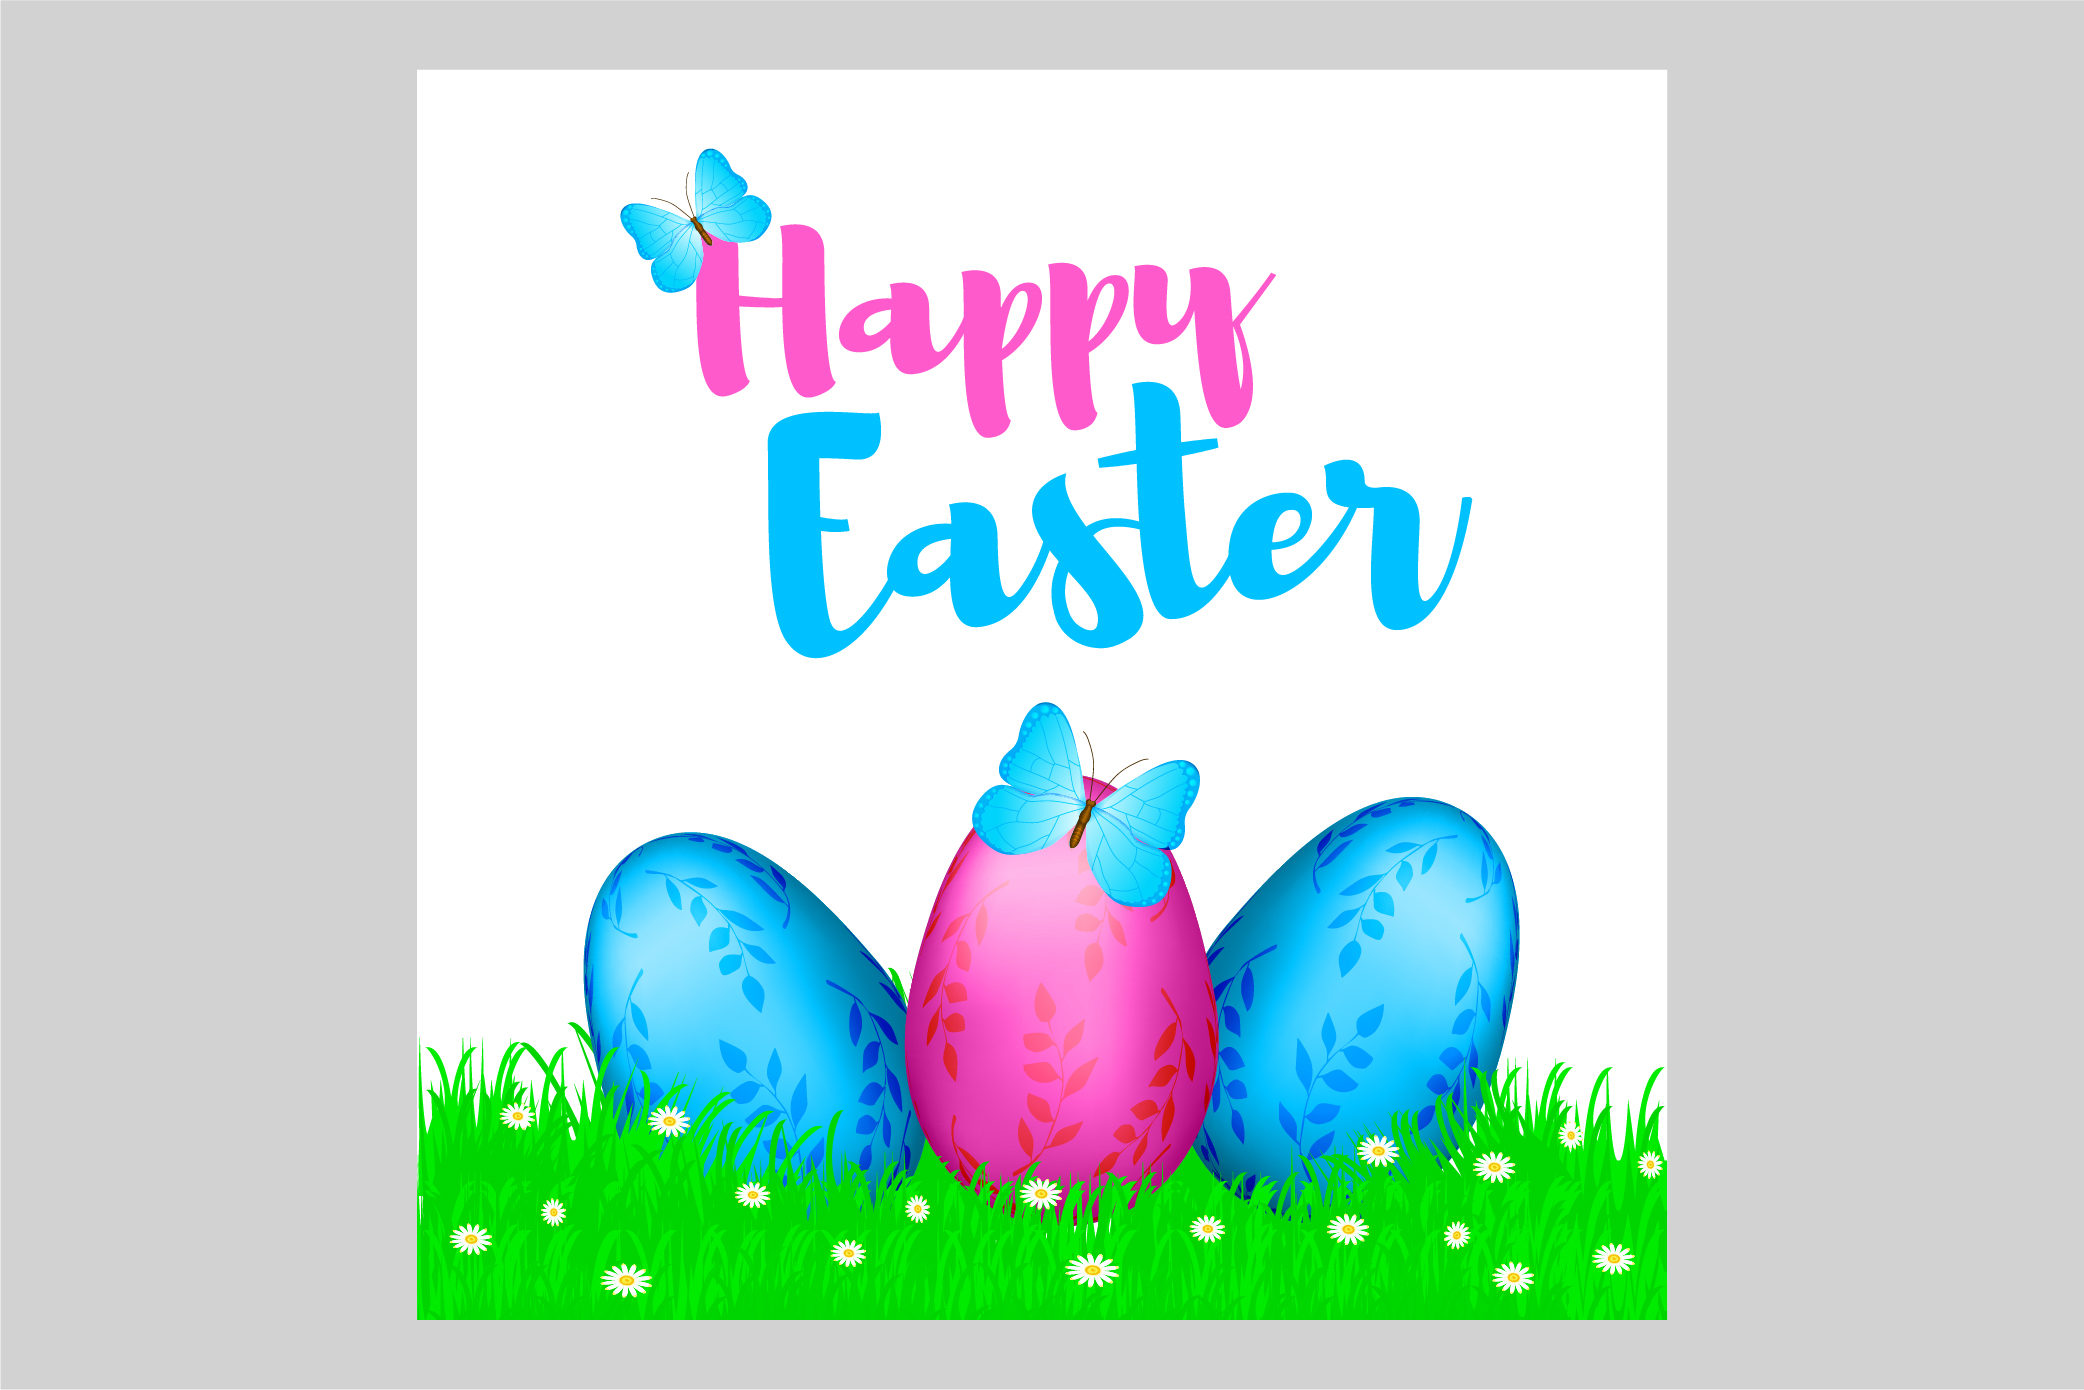 Happy Easter - EPS, Ai, JPG example image 1